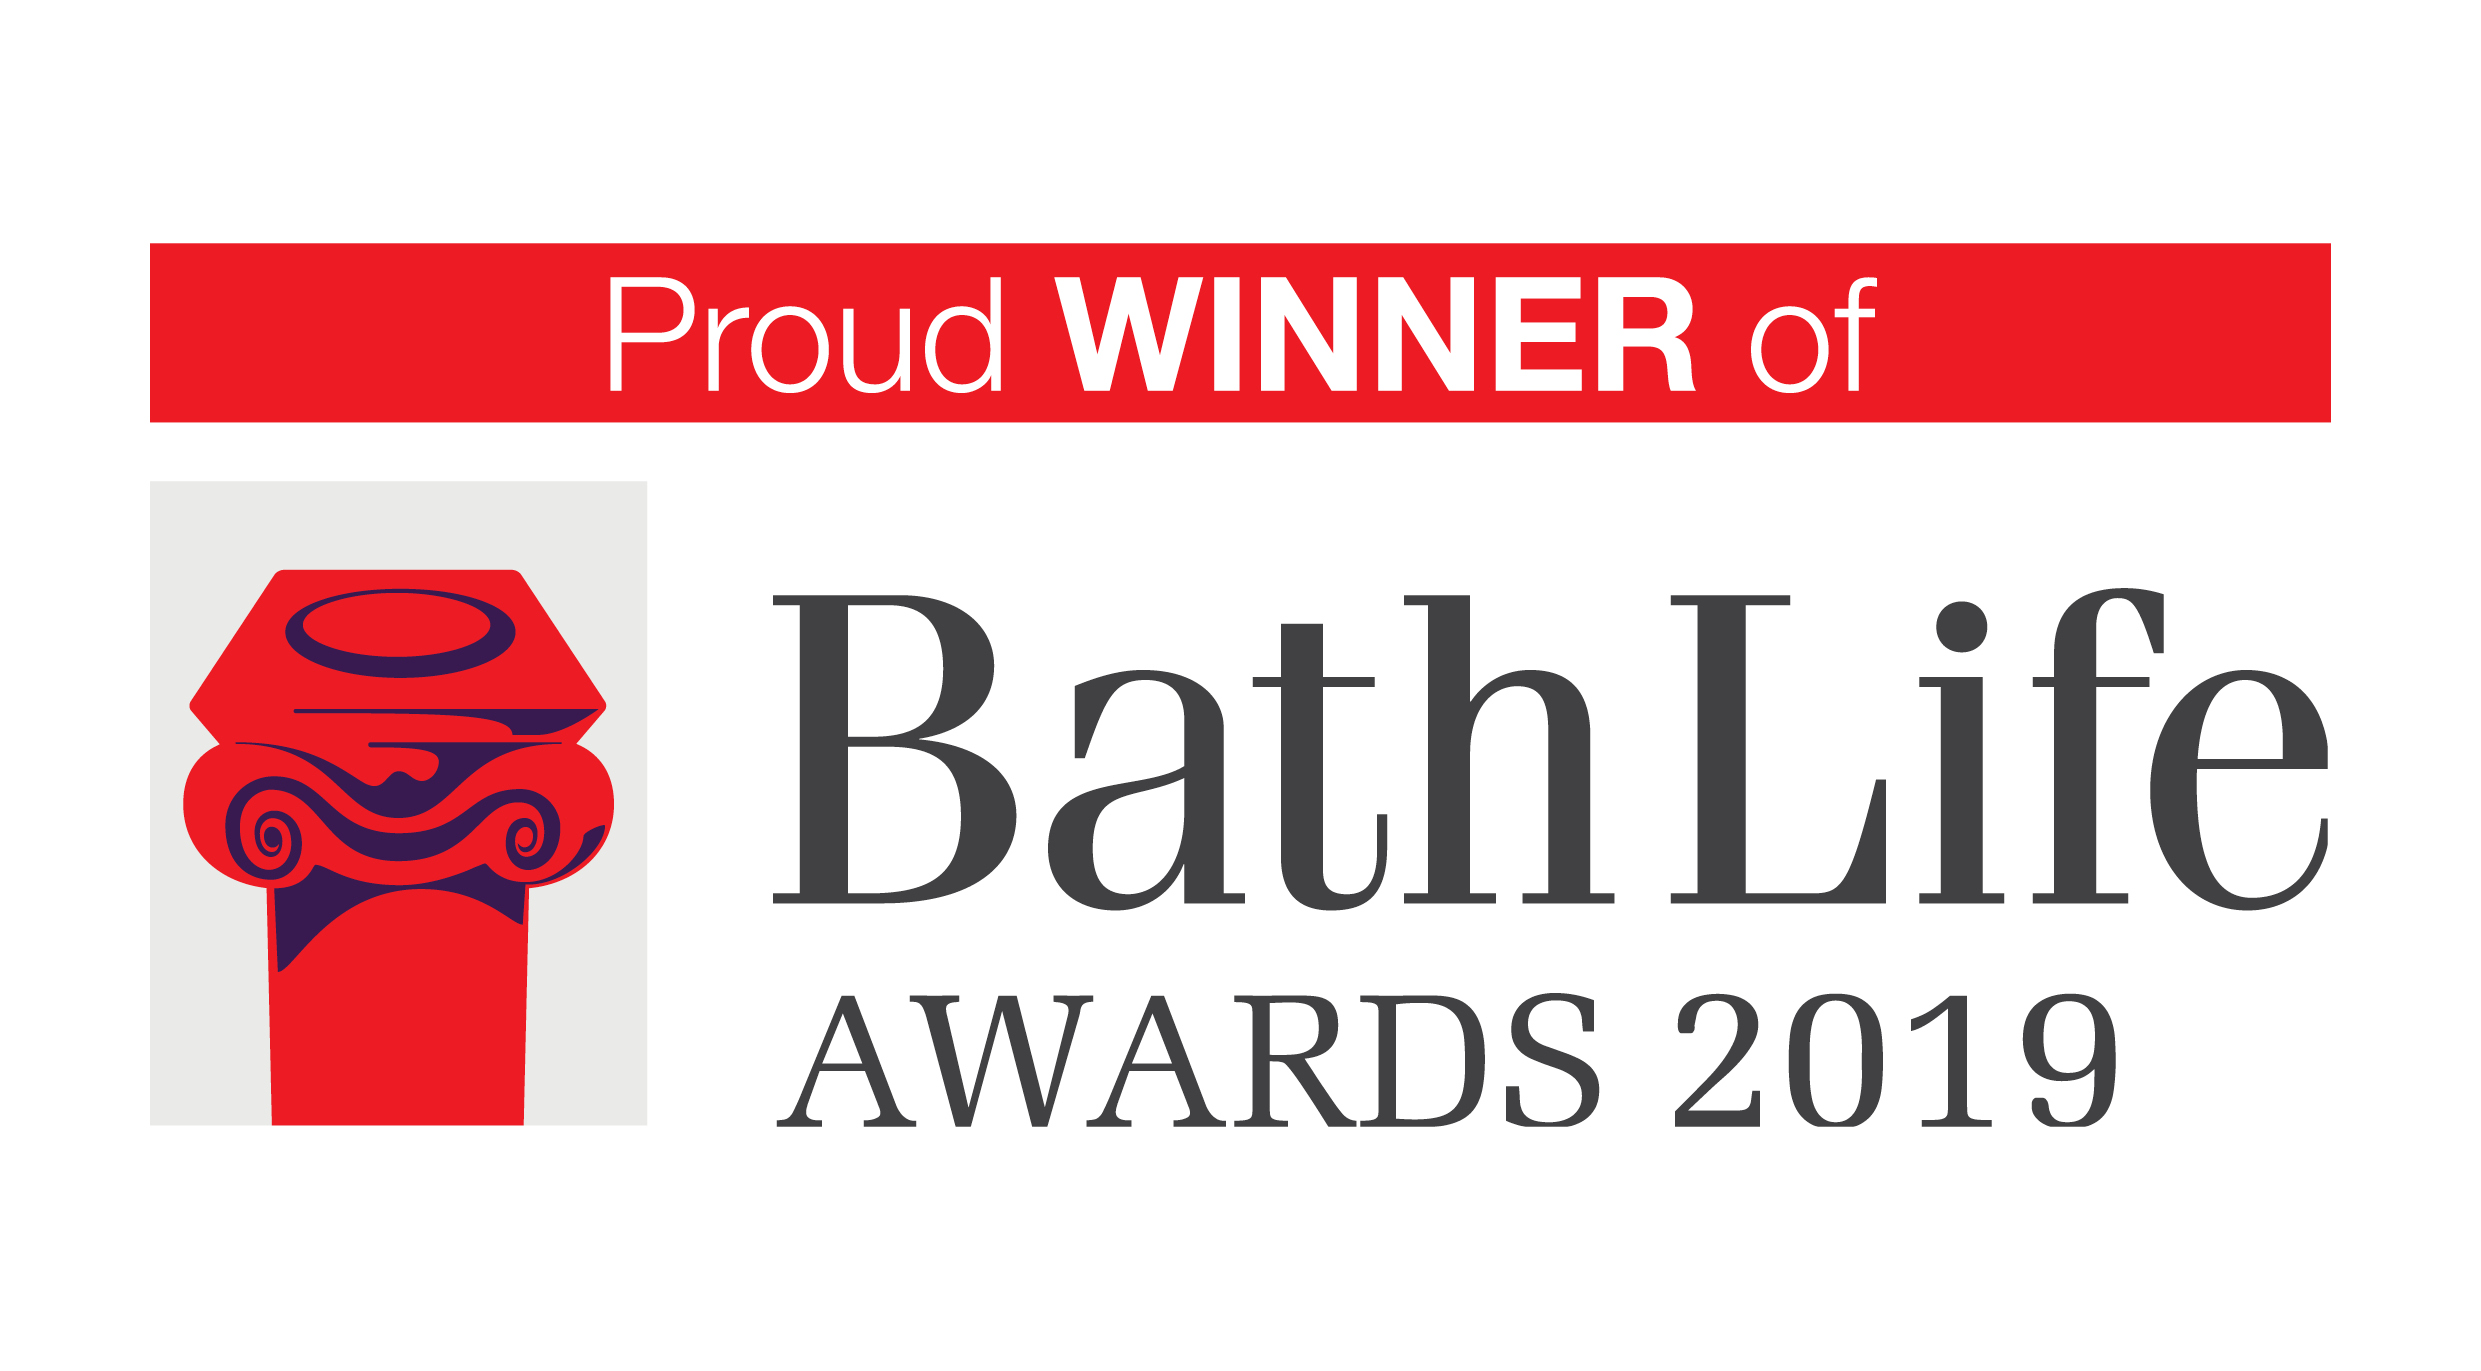 Bath Life Awards Winner 2019